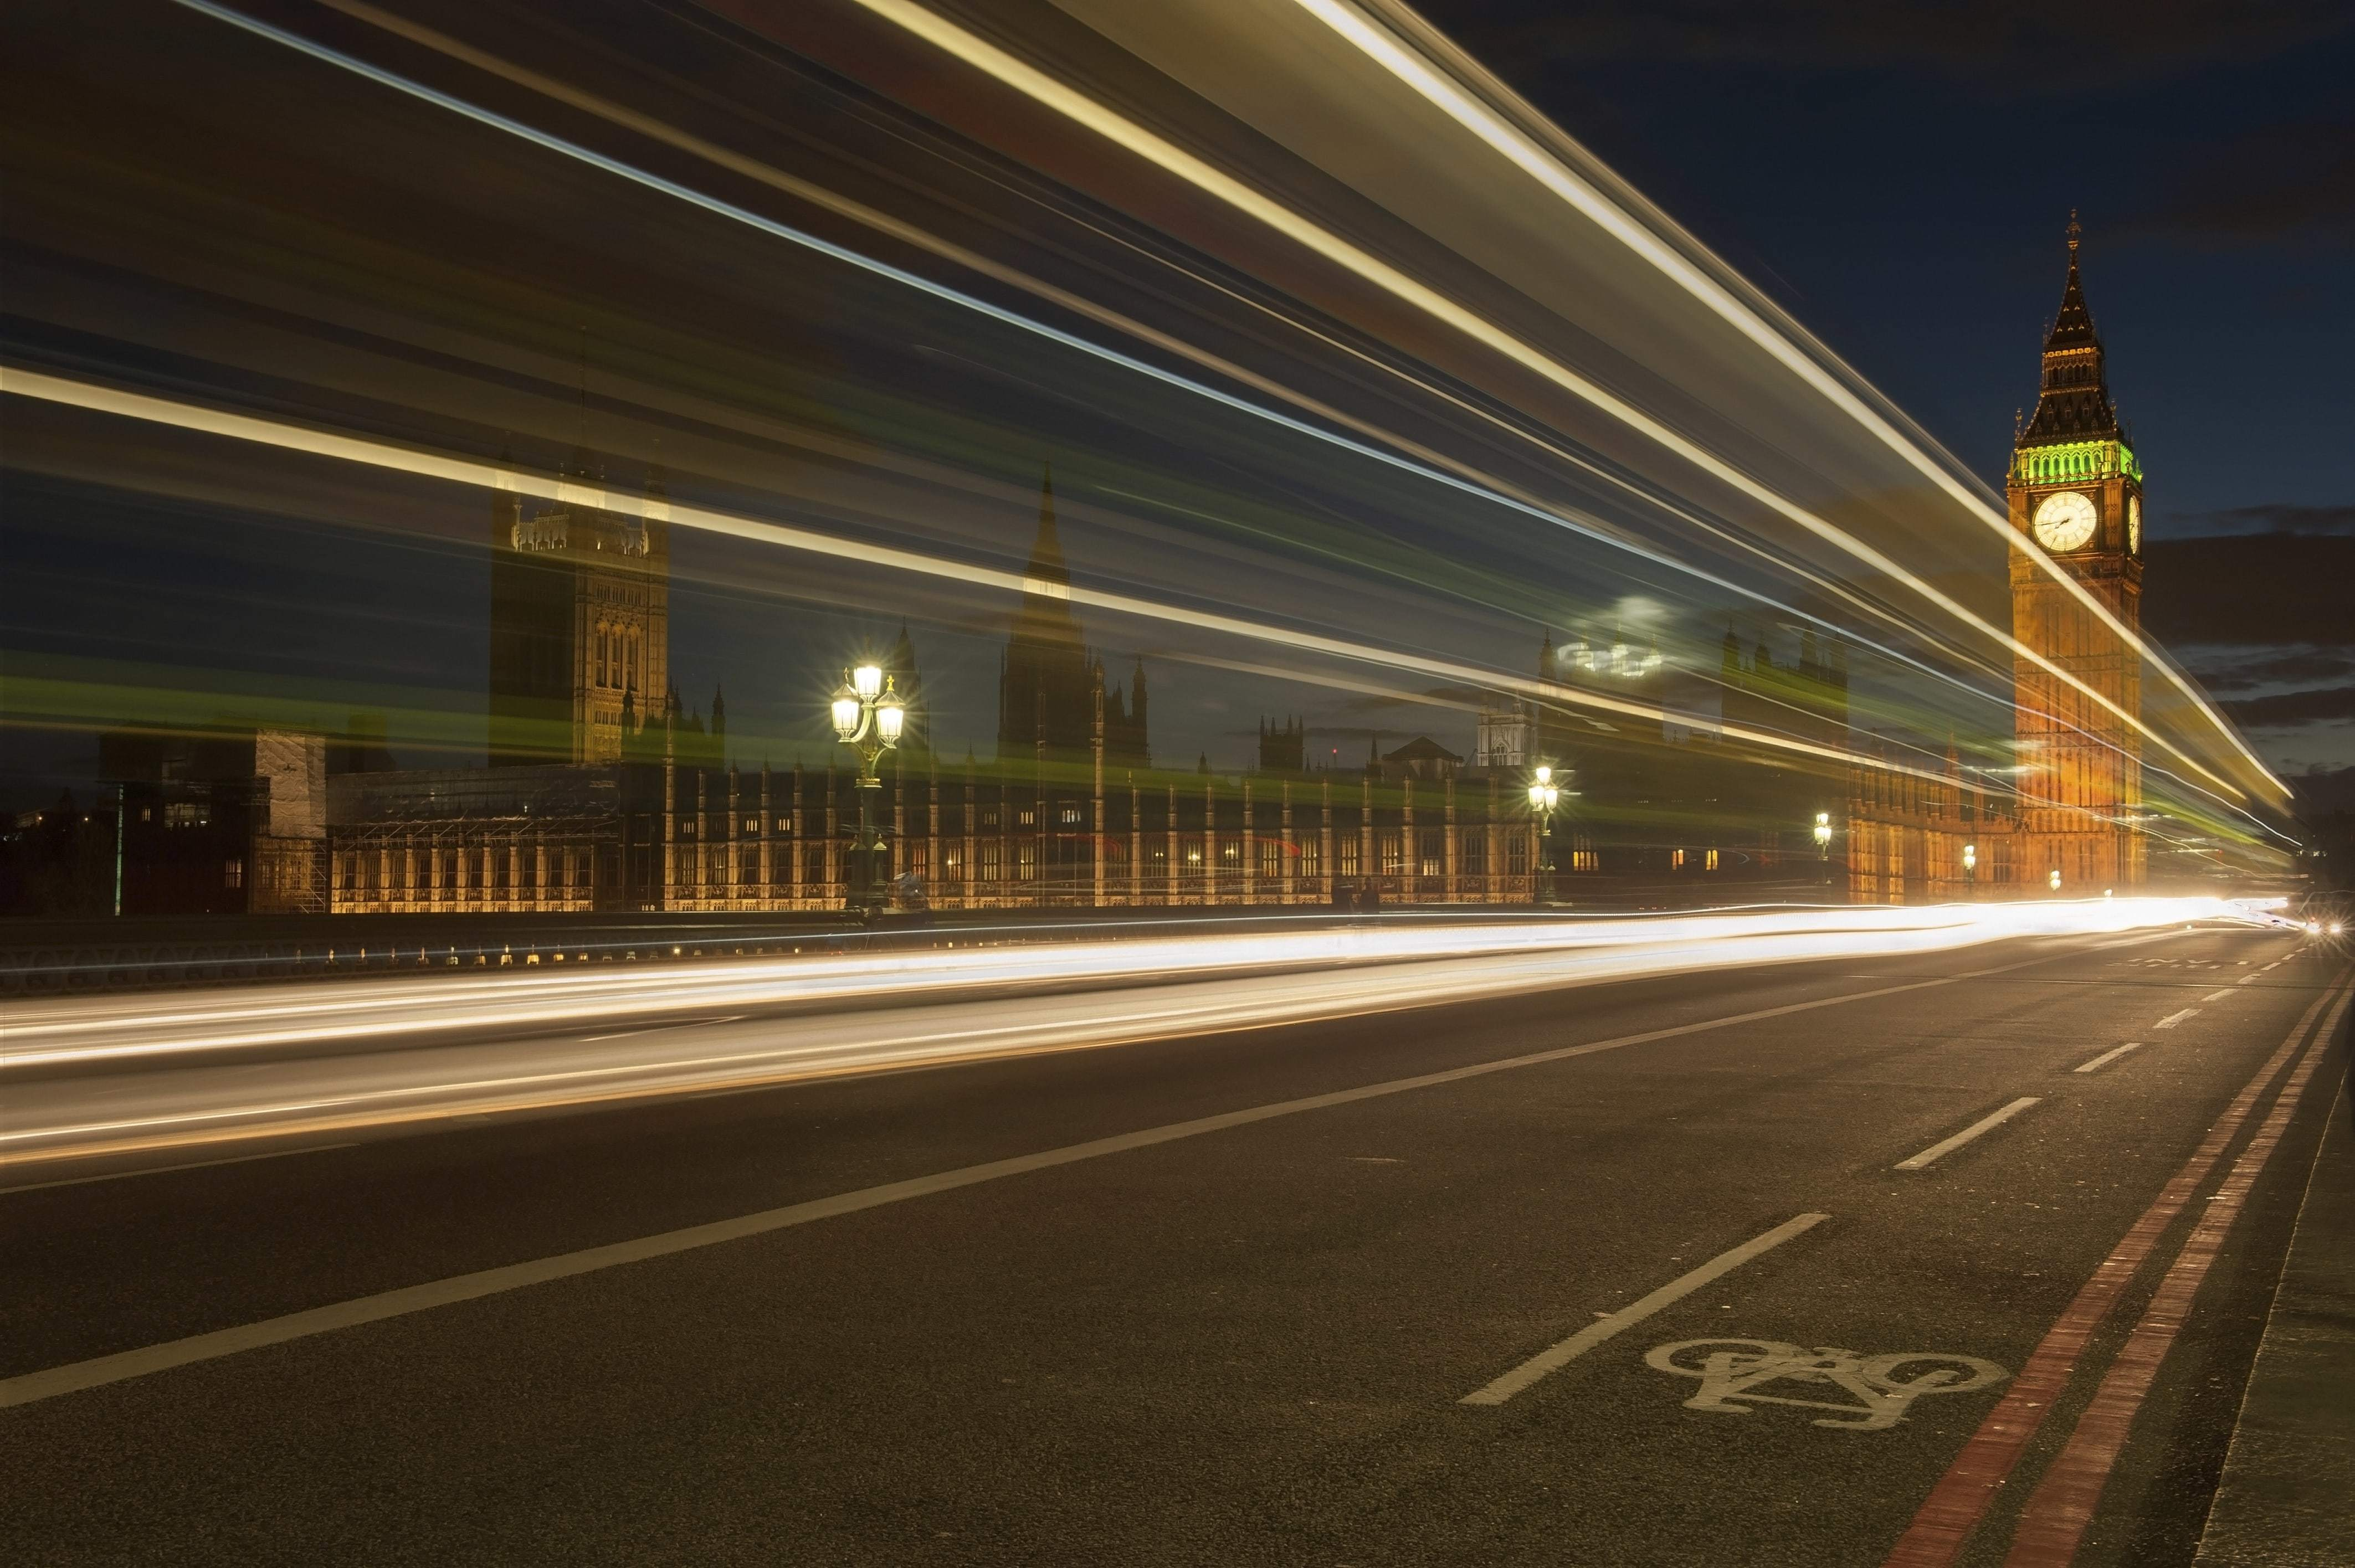 Light trails photo in Central London, Big Ben